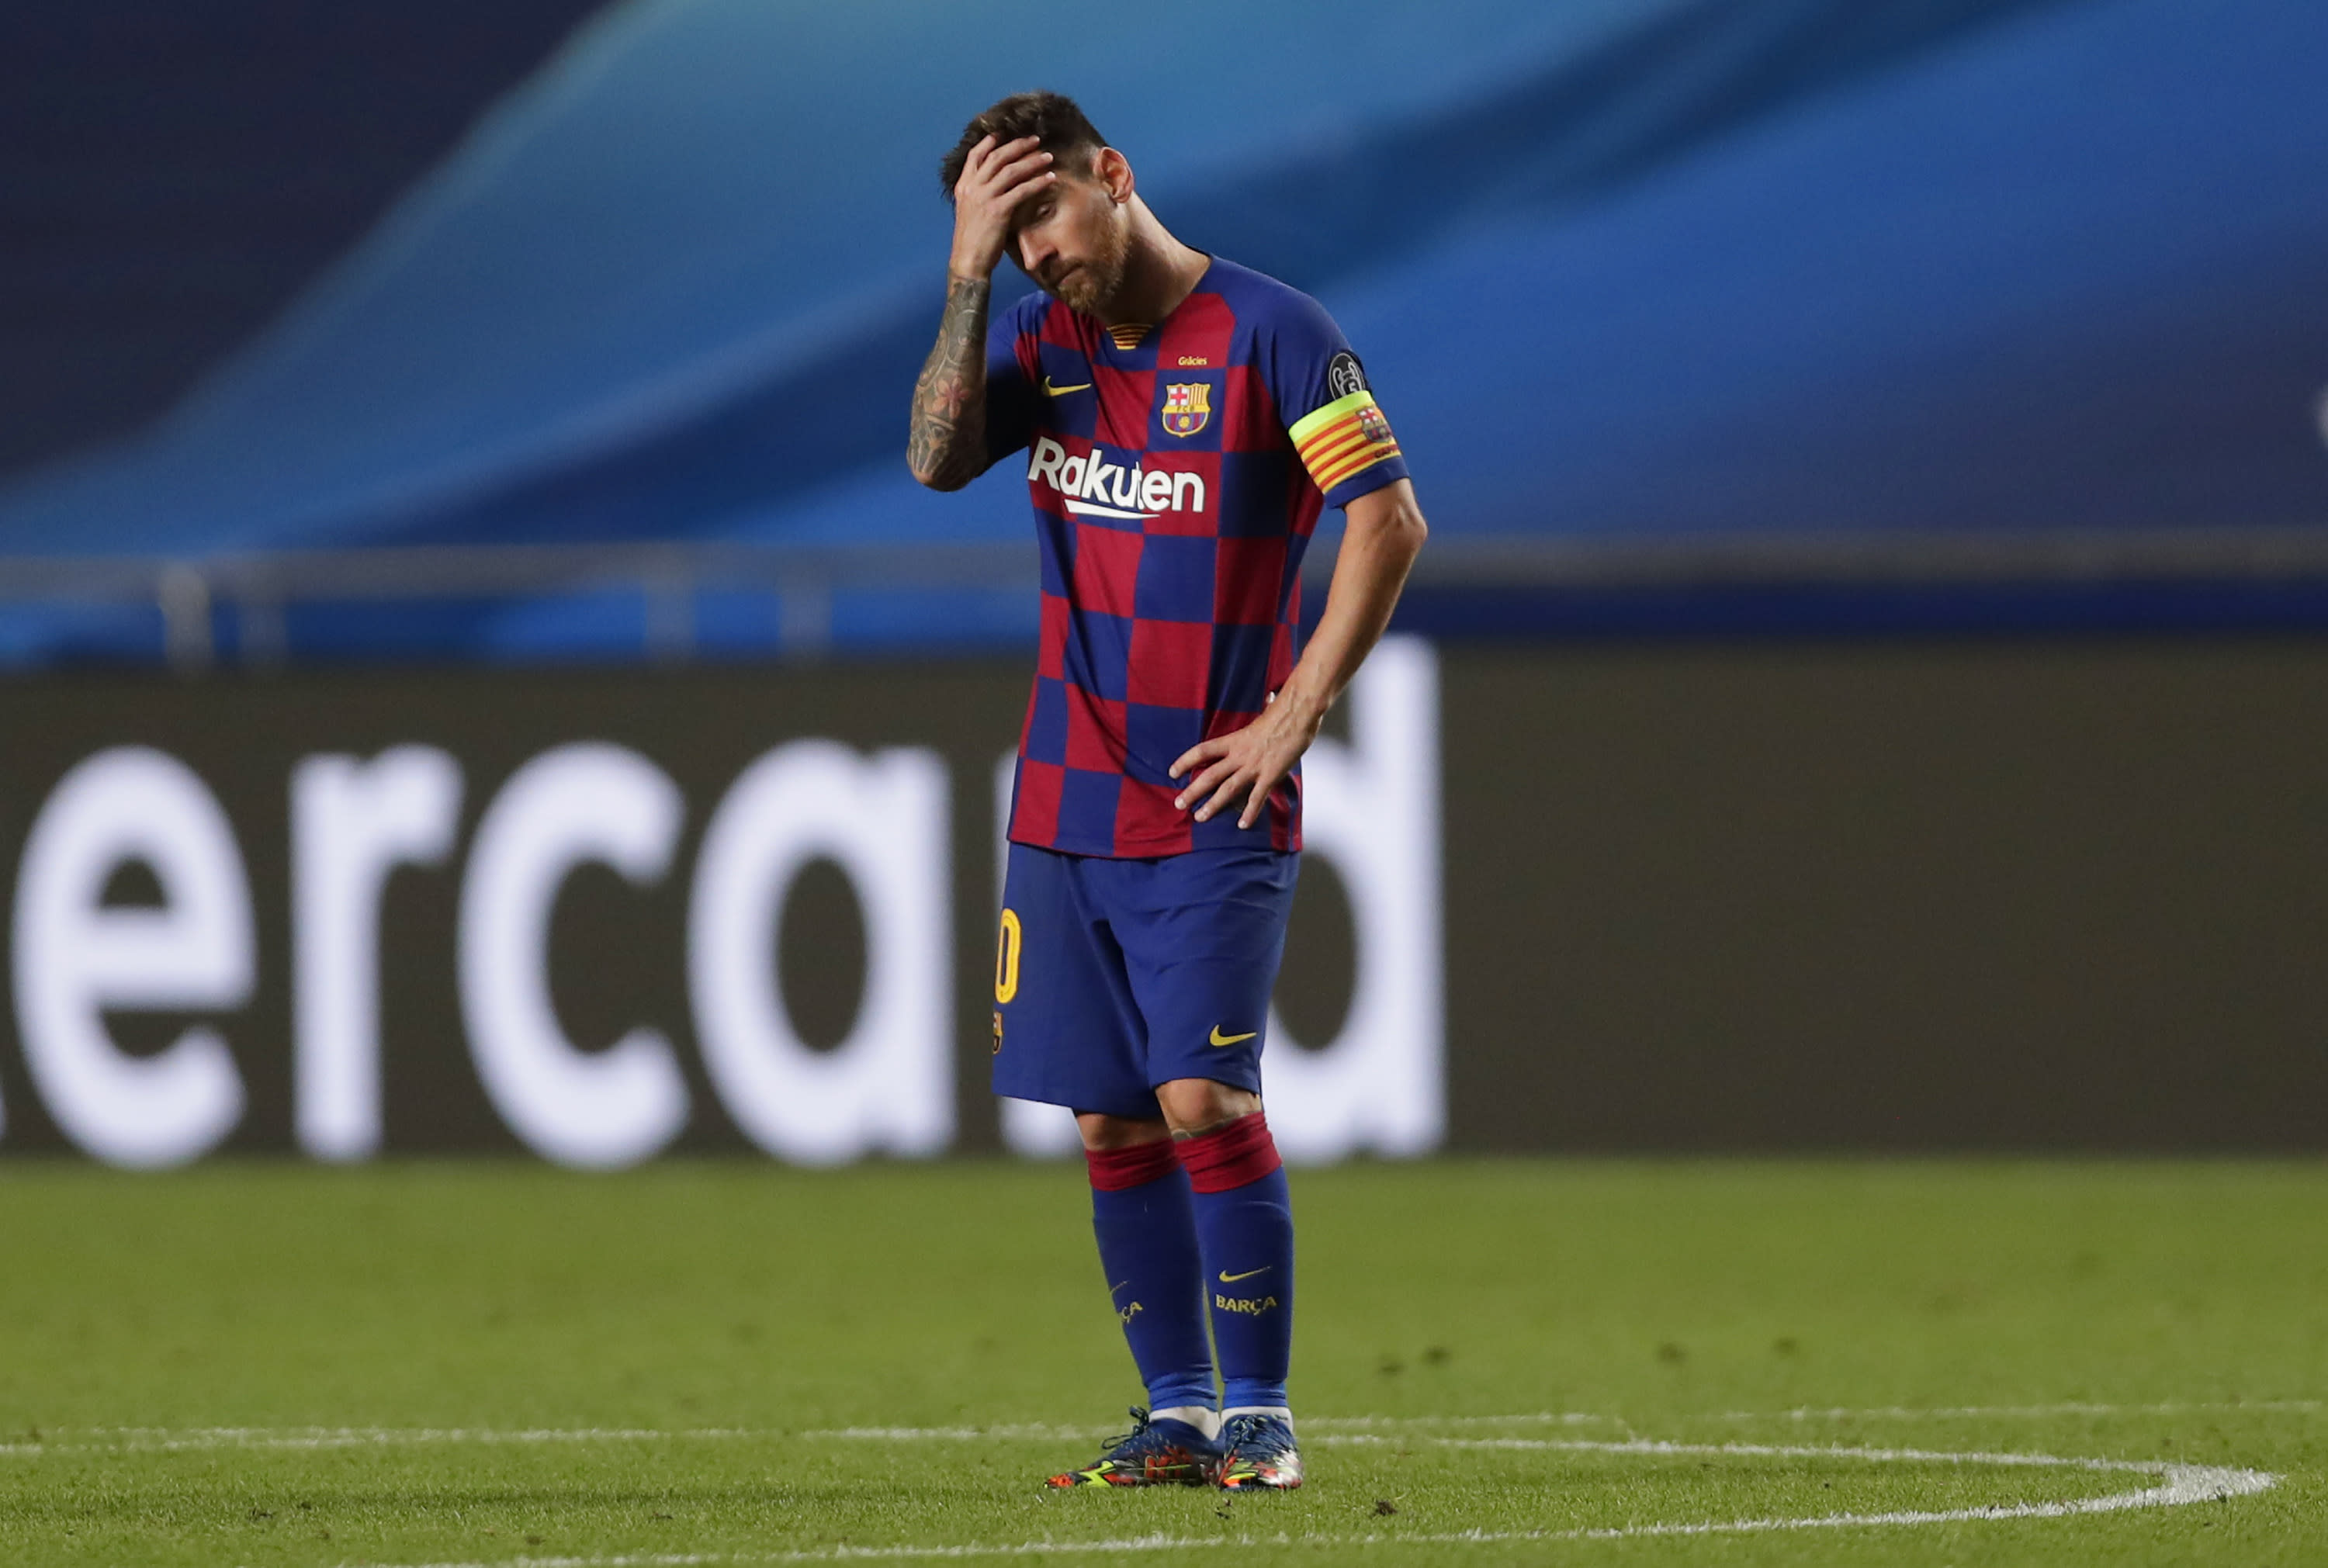 Champions League Bayern Munich Humiliates Barcelona Is This The End Of The Lionel Messi Era Video